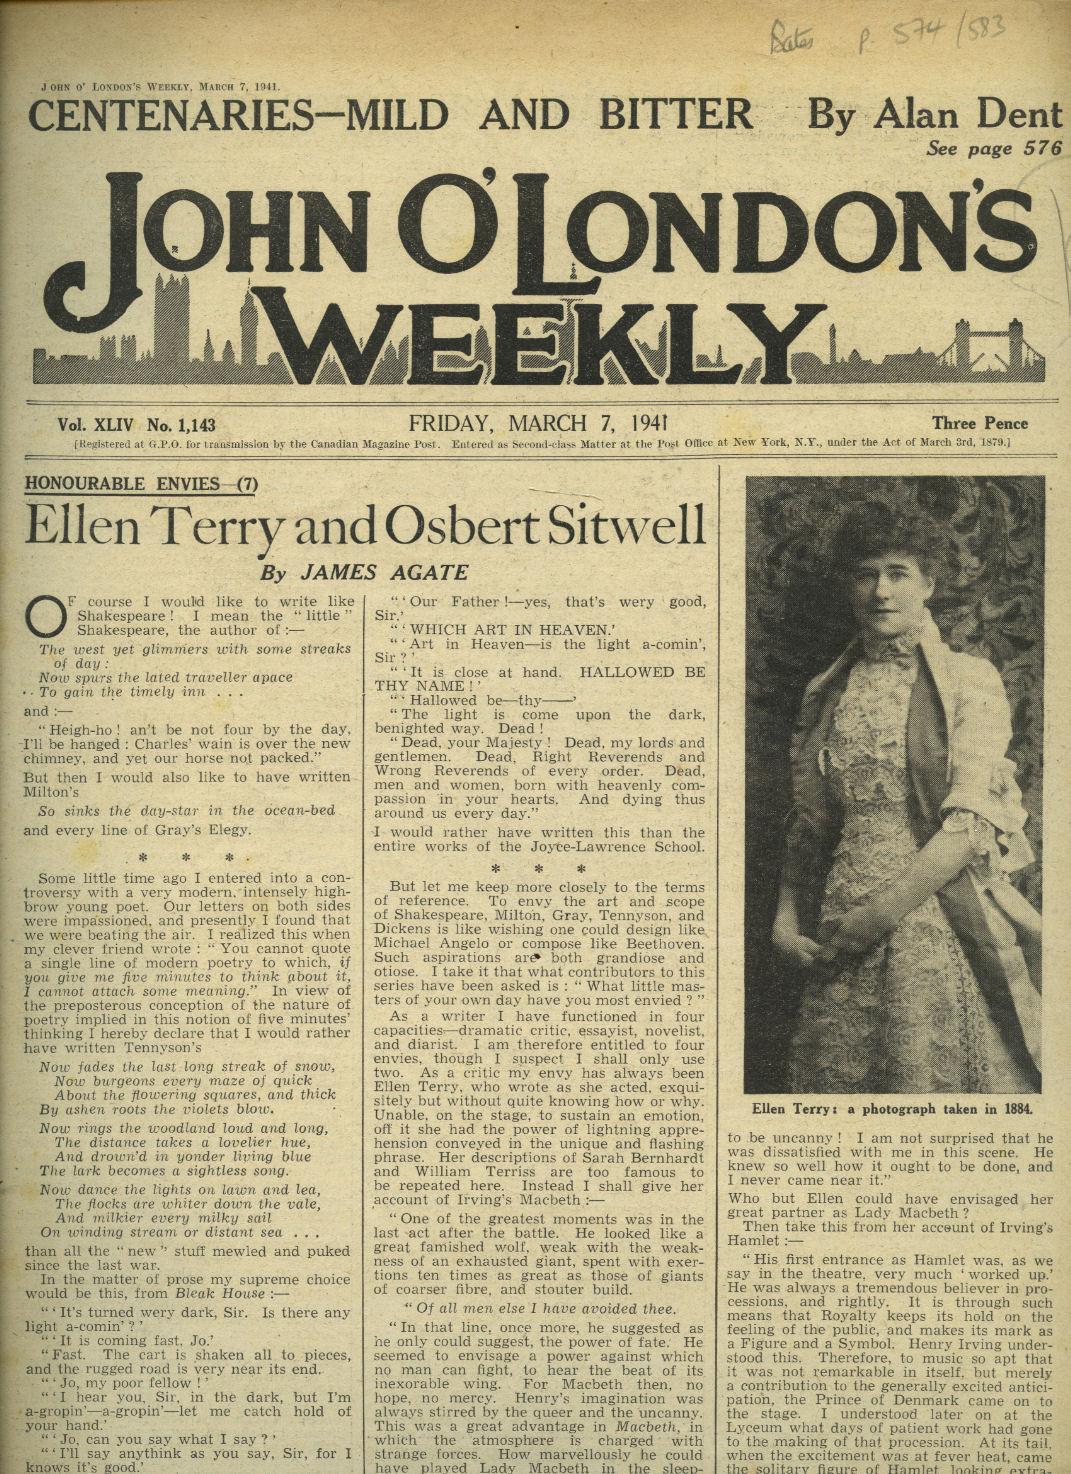 NEW SHORT STORIES AND ARTICLES BY: H. E. BATES; JOHN HARLEY-MASON; JAMES AGATE; ALAN DENT; HOOLE JACKSON. [HENRY WILLIAMSON | ELLEN TERRY | OSBERT SITWELL]. - John O'London's Weekly | Volume XLIV. Issue Number 1143 | Friday, March 7, 1941 | H. E. Bates 'Henry Williamson' and 'New Books Reviewed'; John Harley-Mason 'Tracking Down the Virus'; James Agate 'Ellen Terry and Osbert Sitwell'; Alan Dent 'Centenaries Mild and Bitter'; Hoole Jackson 'Cornwall in Peace and War'.